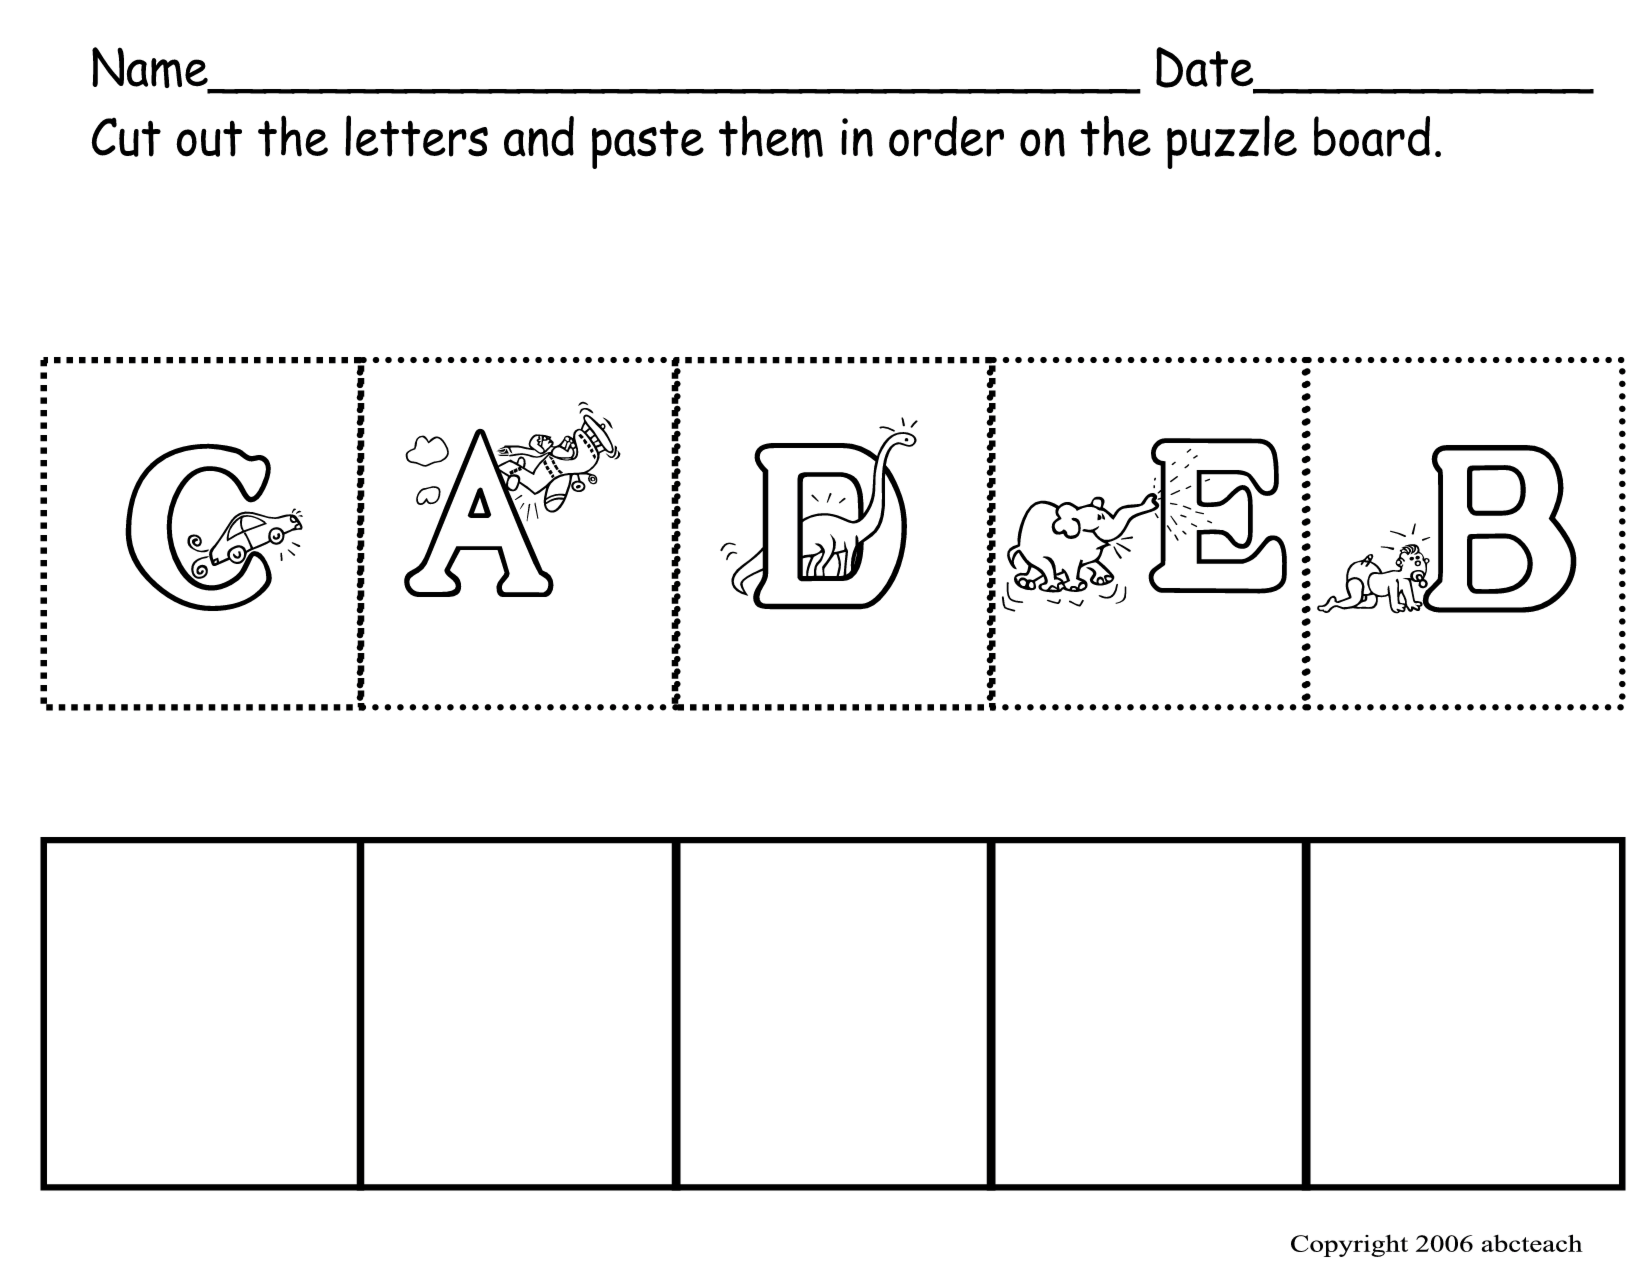 Alphabet Worksheets For Preschoolers Abc Preschool Worksheets